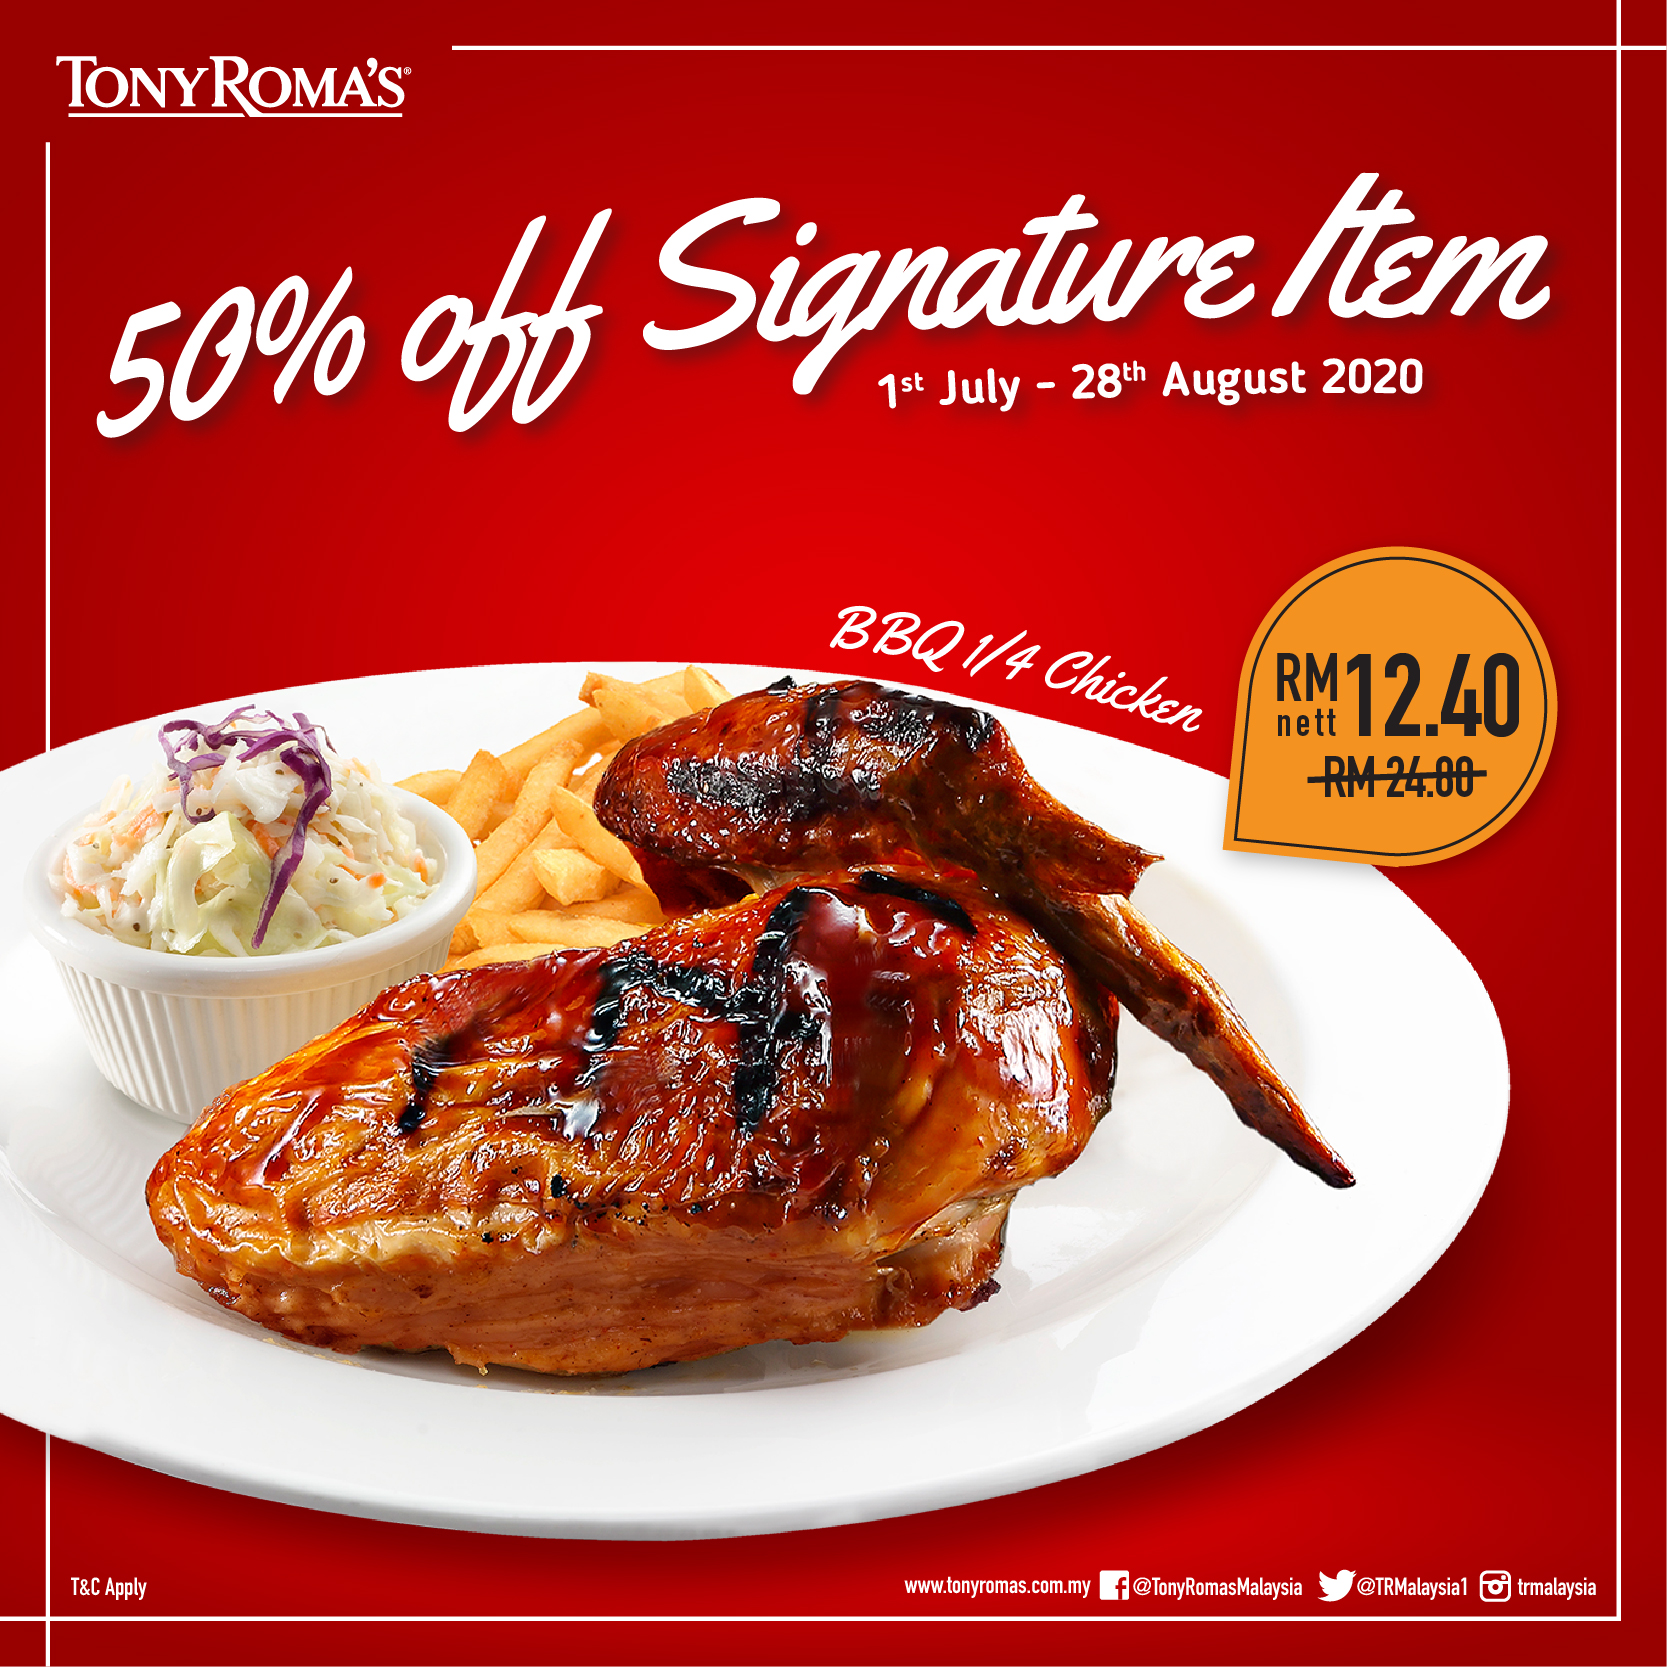 Tony-Romas-50-Off-Signature-Item-BBQ-Quarter-Chicken